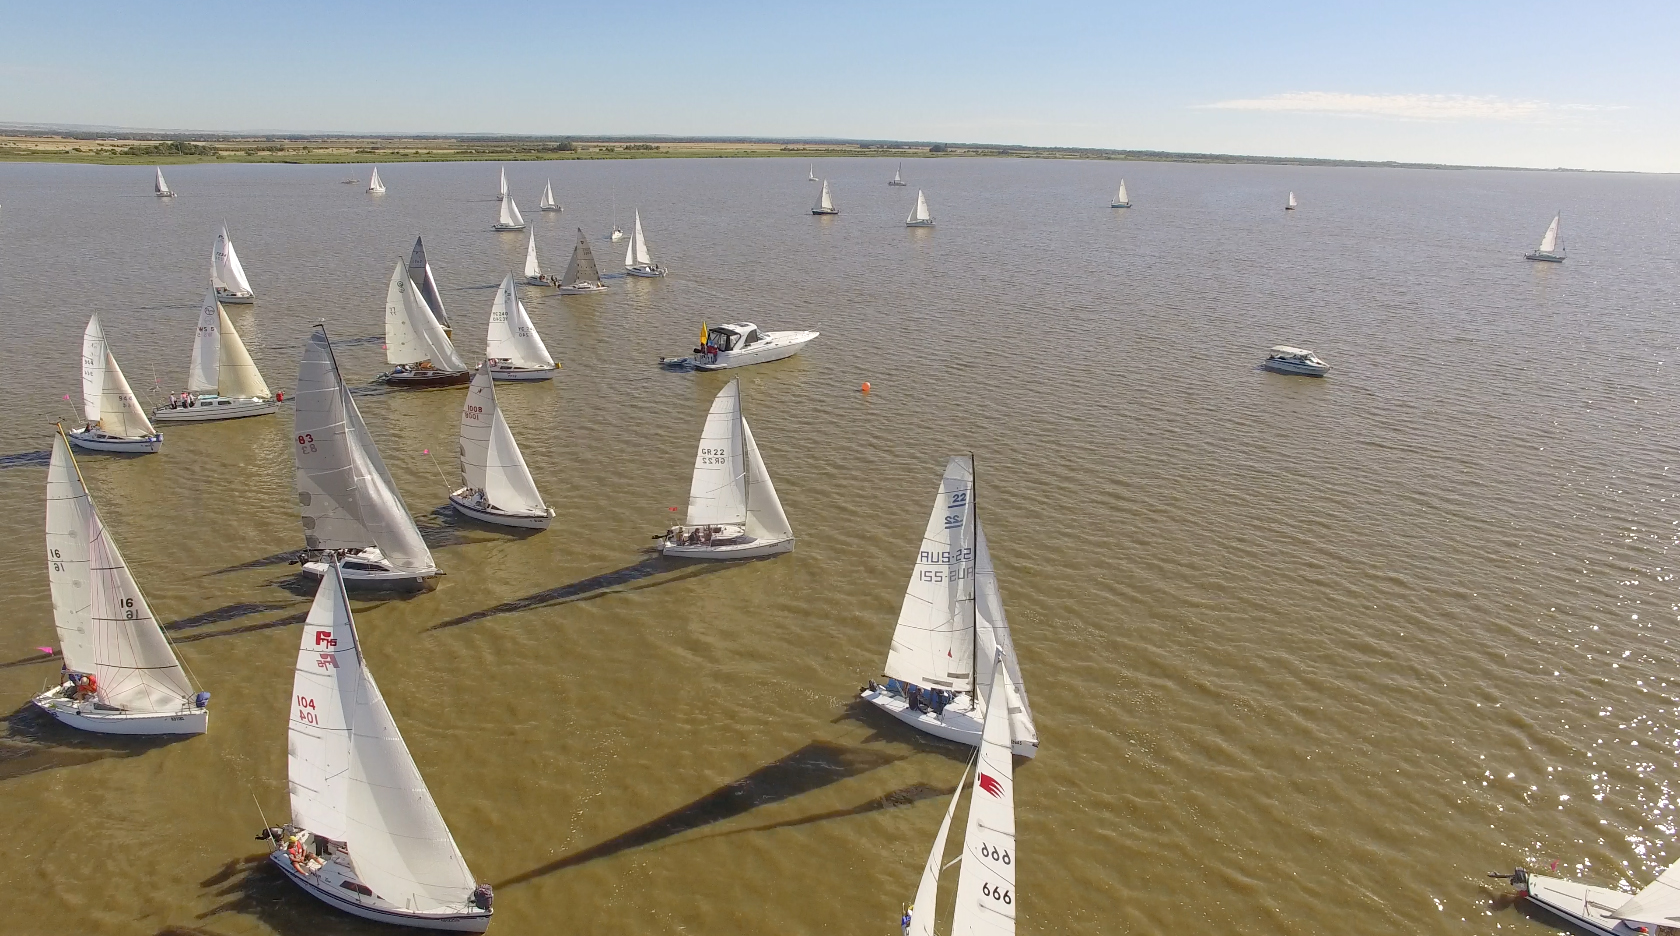 Goolwa Regatta Week one of SA's most iconic events